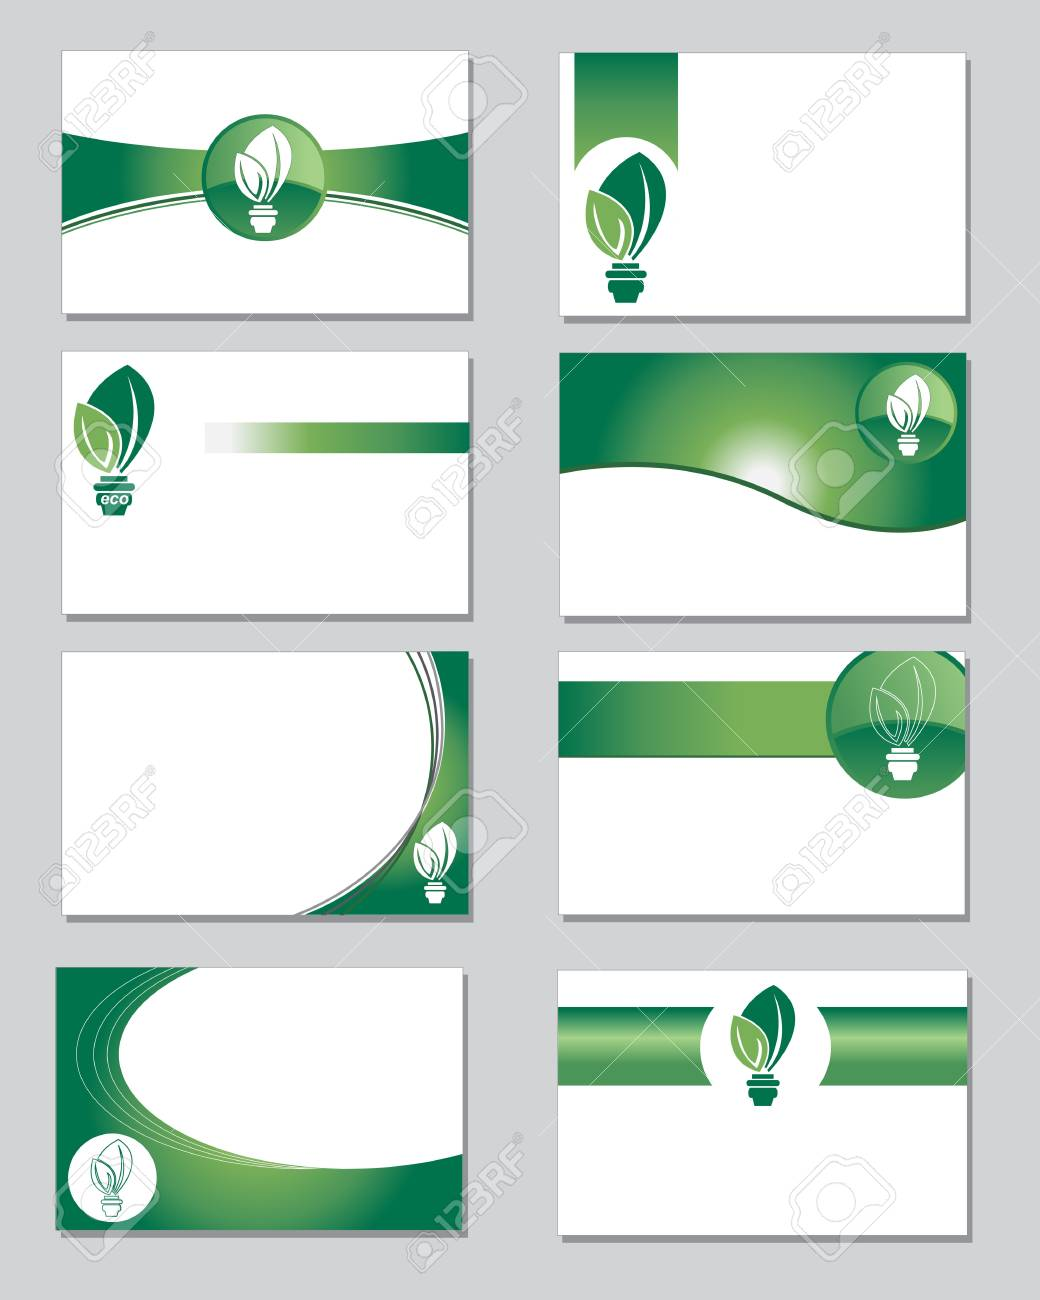 Selection of business cards on an environmental theme royalty free selection of business cards on an environmental theme stock vector 13318524 colourmoves Images